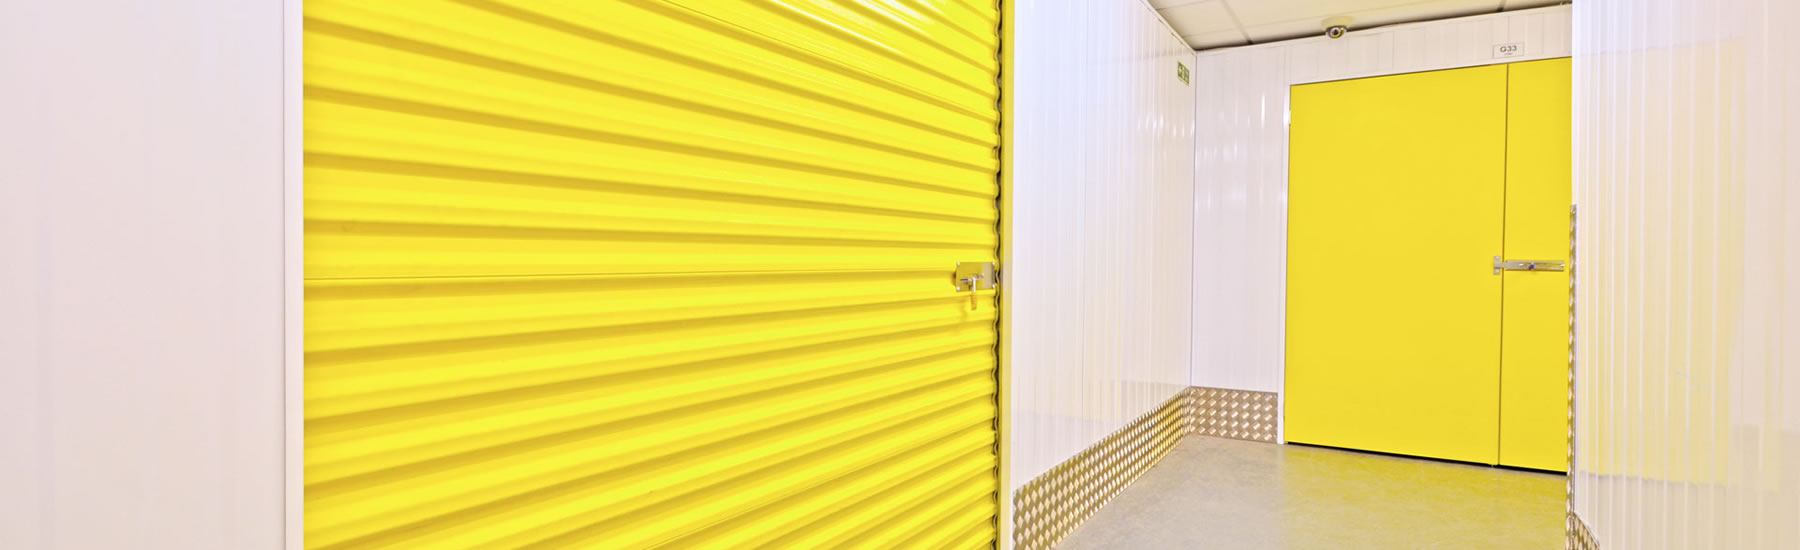 Interior of our storage facility in Wellingborough depicting shutter door